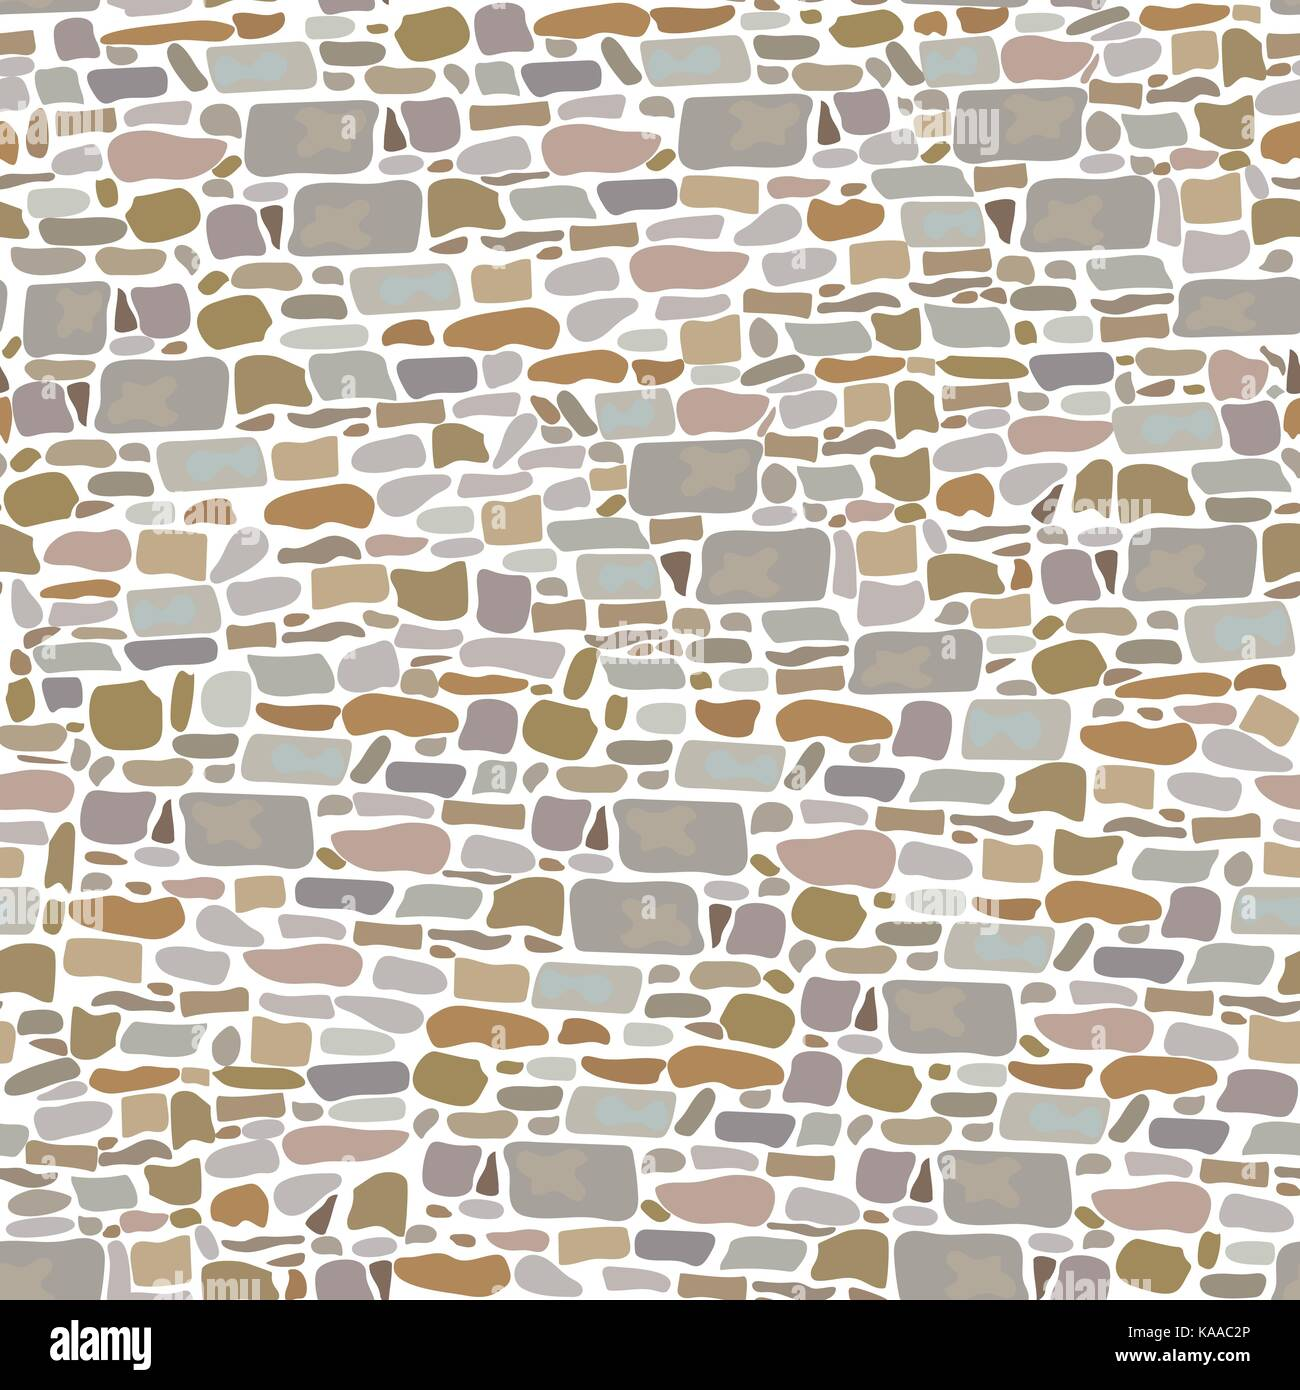 Stone Block Wall, Seamless pattern. Background made of wild bricks. grey, red, sand, yellow, brown, - Stock Vector